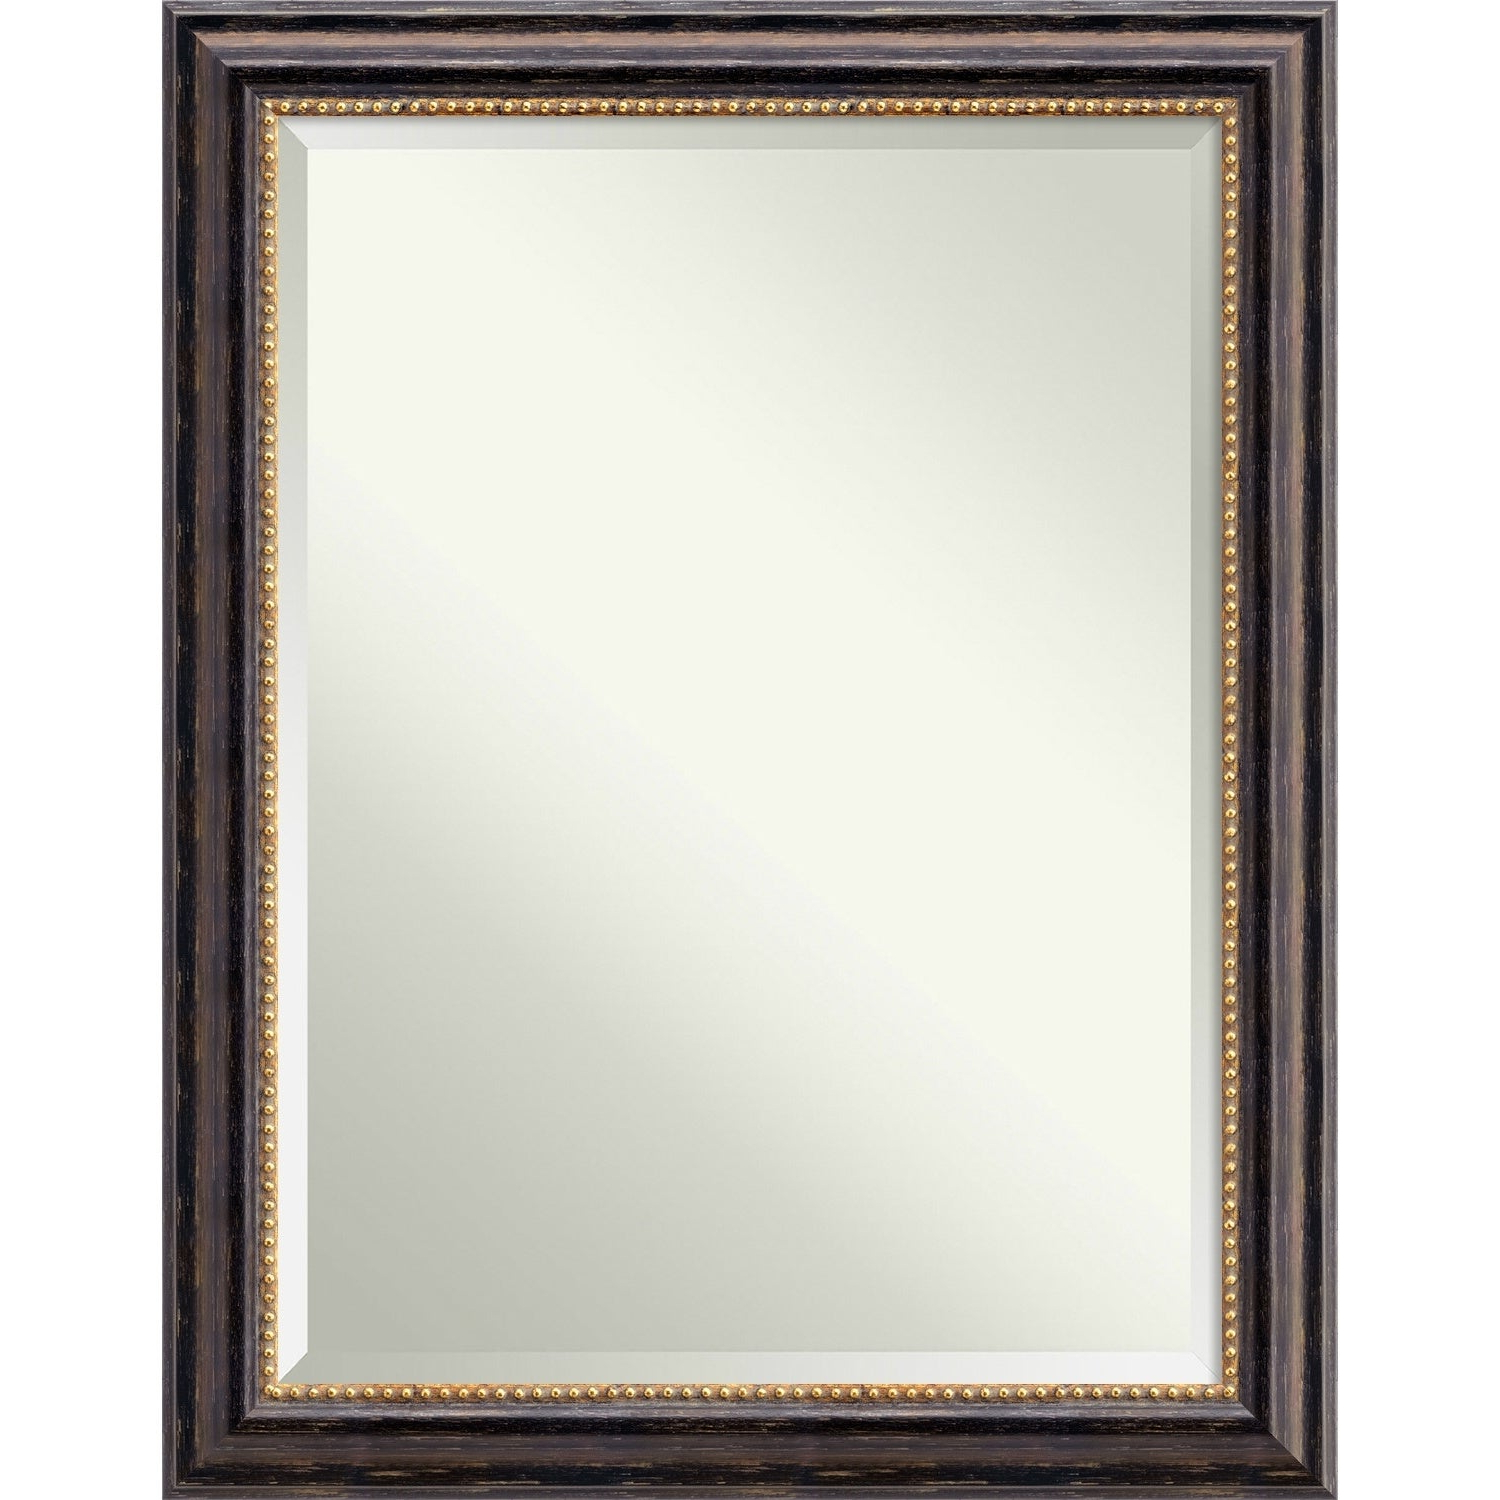 Wall Mirror, Tuscan Rustic Wood – Black/brown Inside Most Current Tuscan Style Wall Mirrors (View 17 of 20)